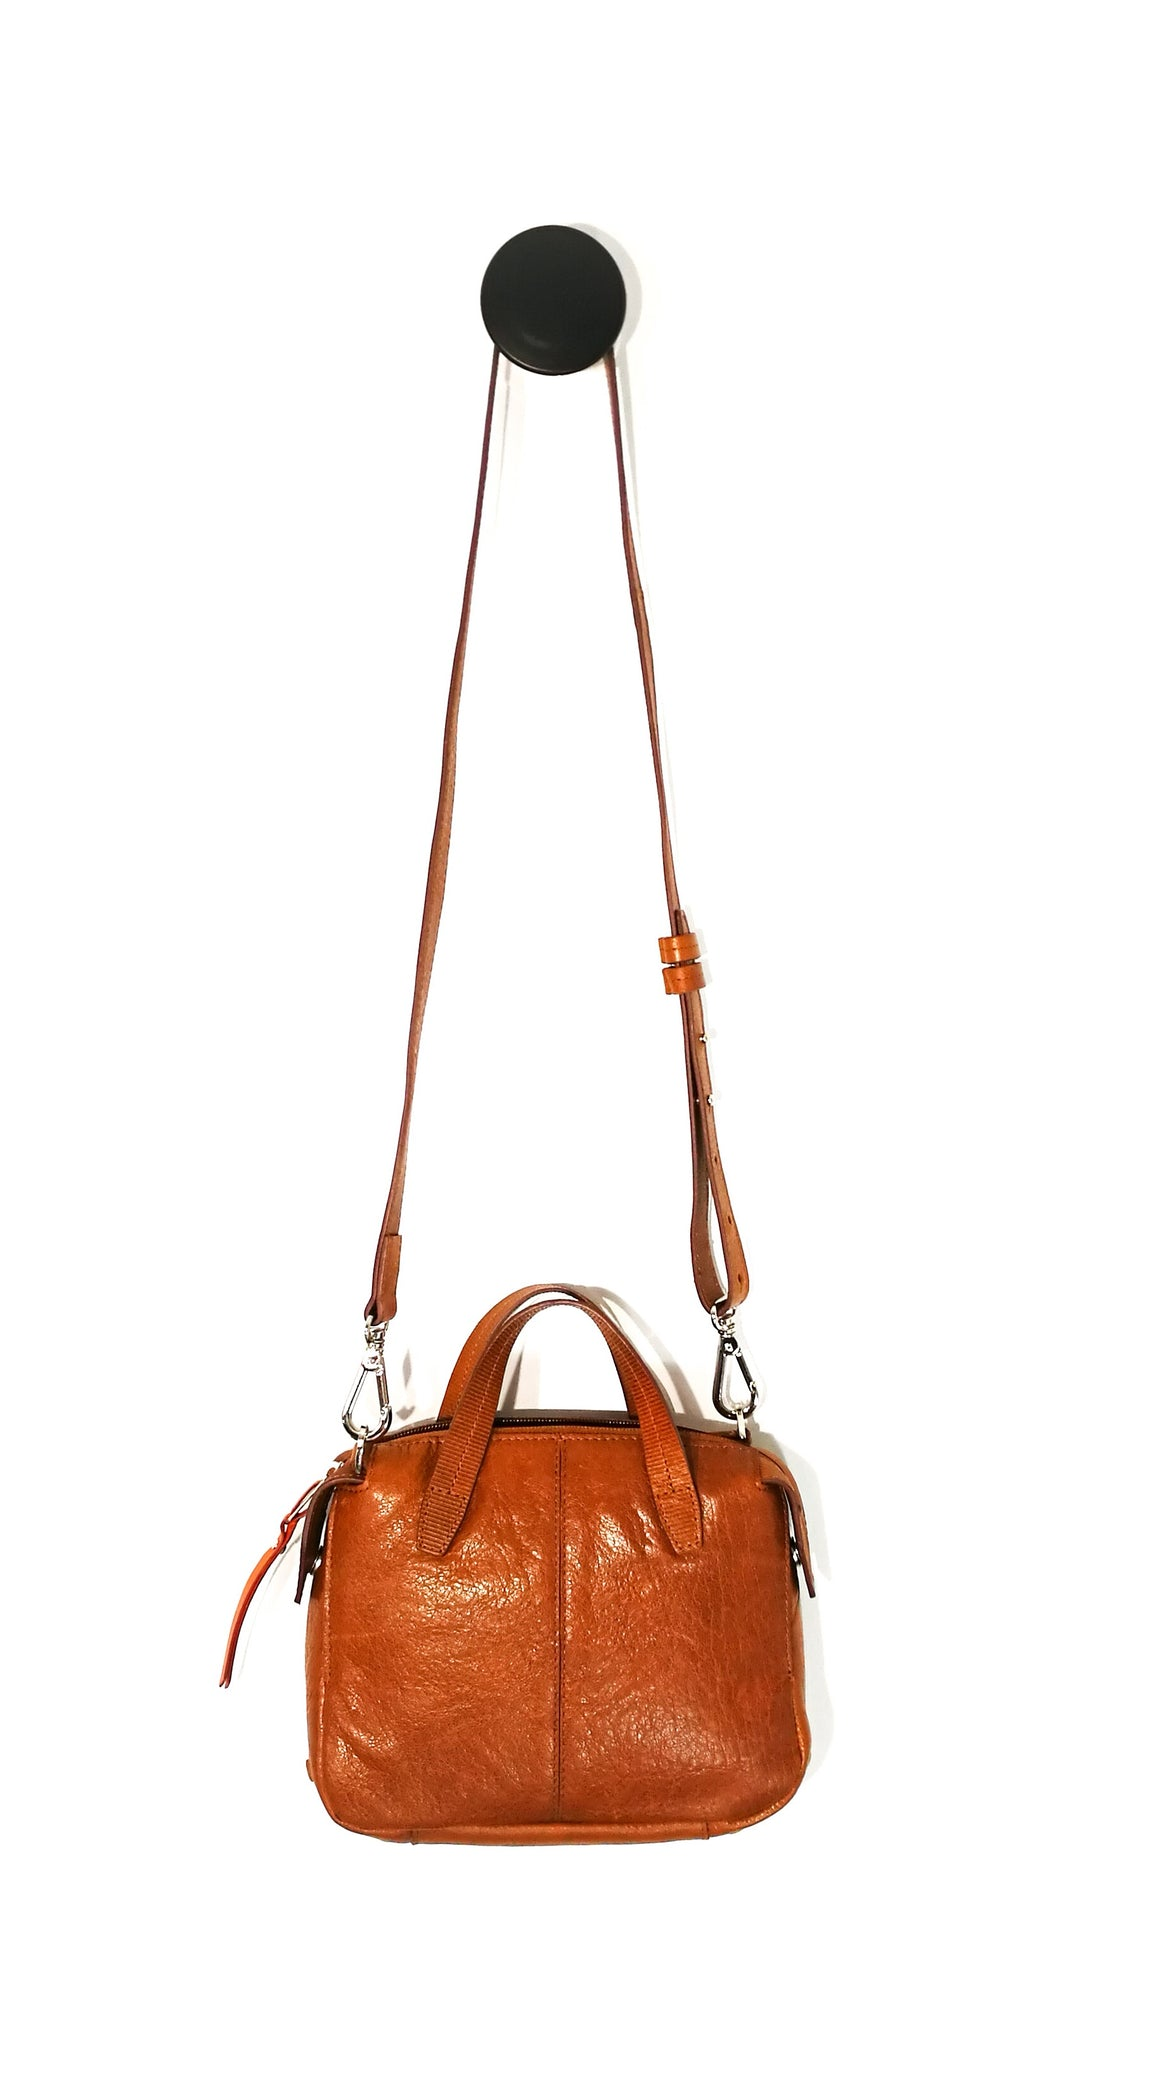 CROSS-BODY SATCHEL